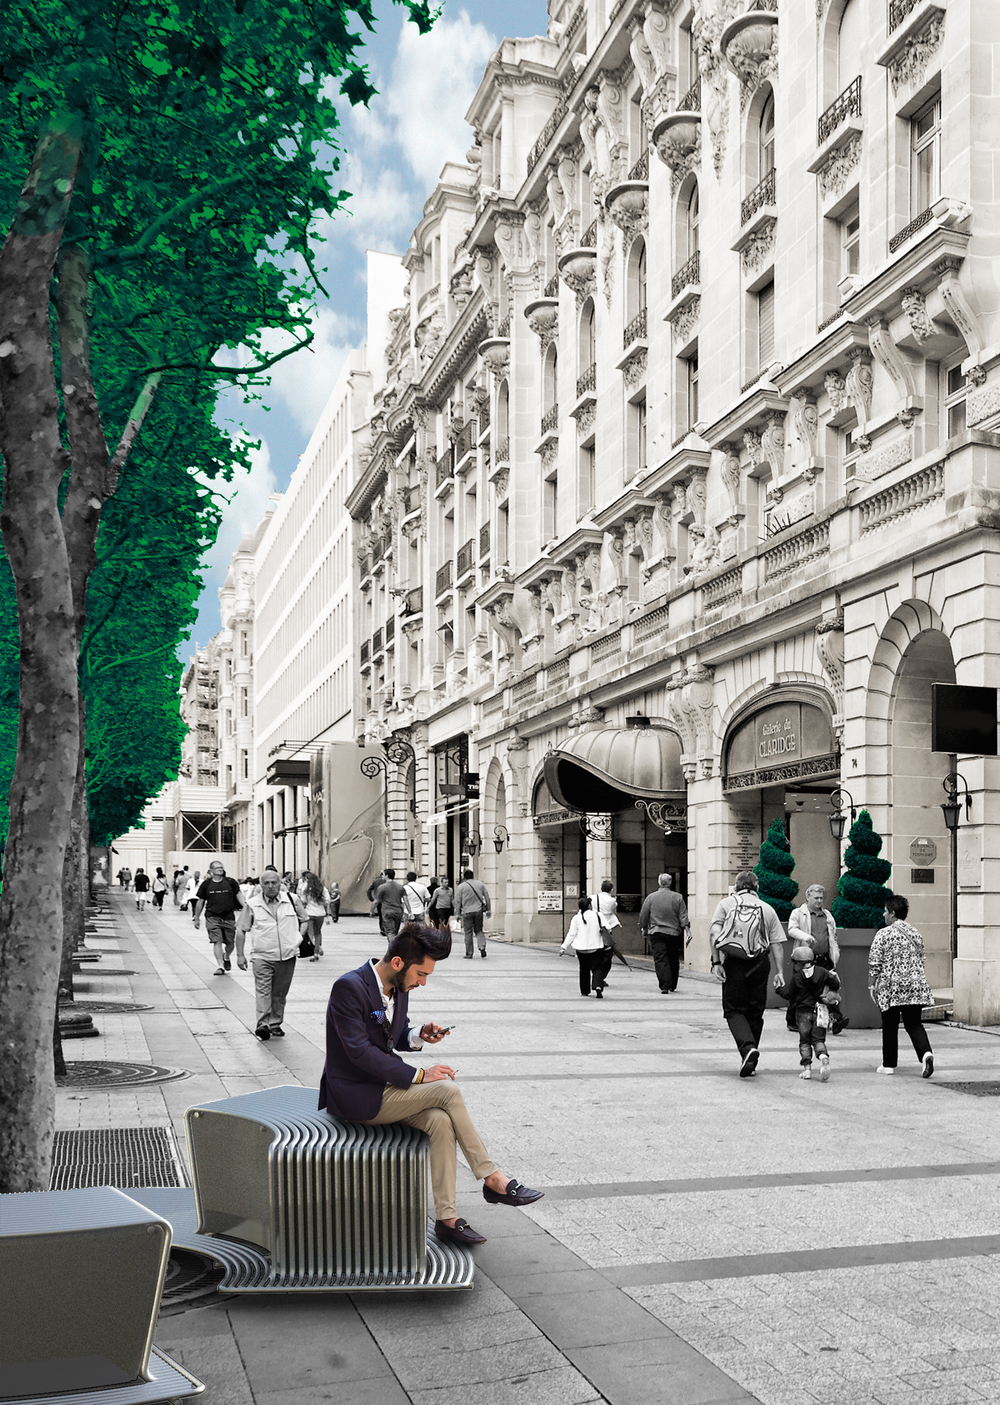 mobject in context - champs elysees - rechten.jpg